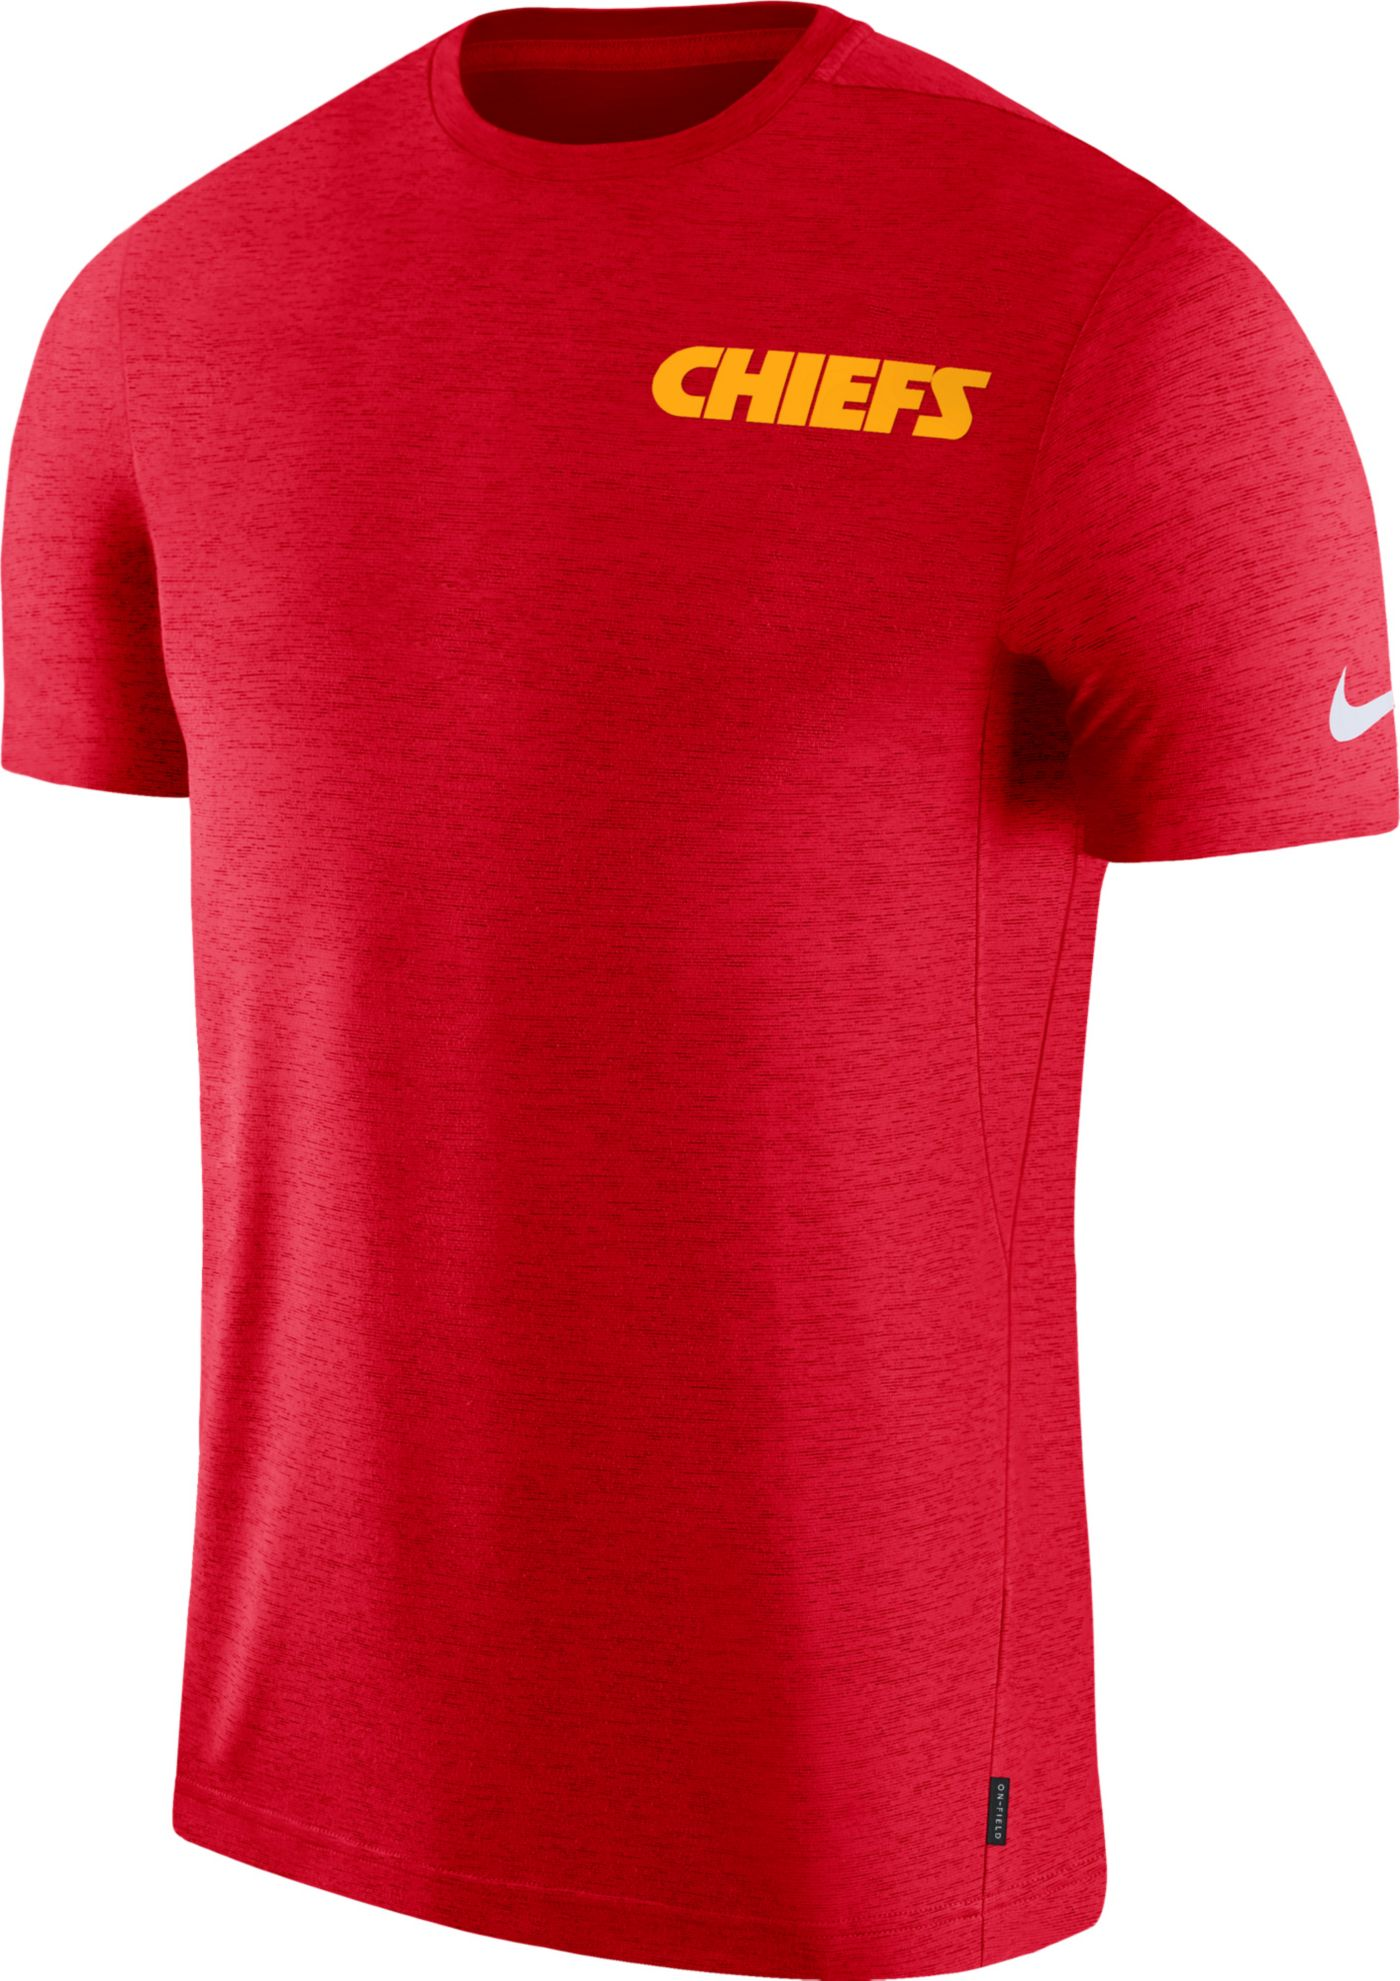 Nike Men's Kansas City Chiefs Sideline Coach Performance Red T-Shirt